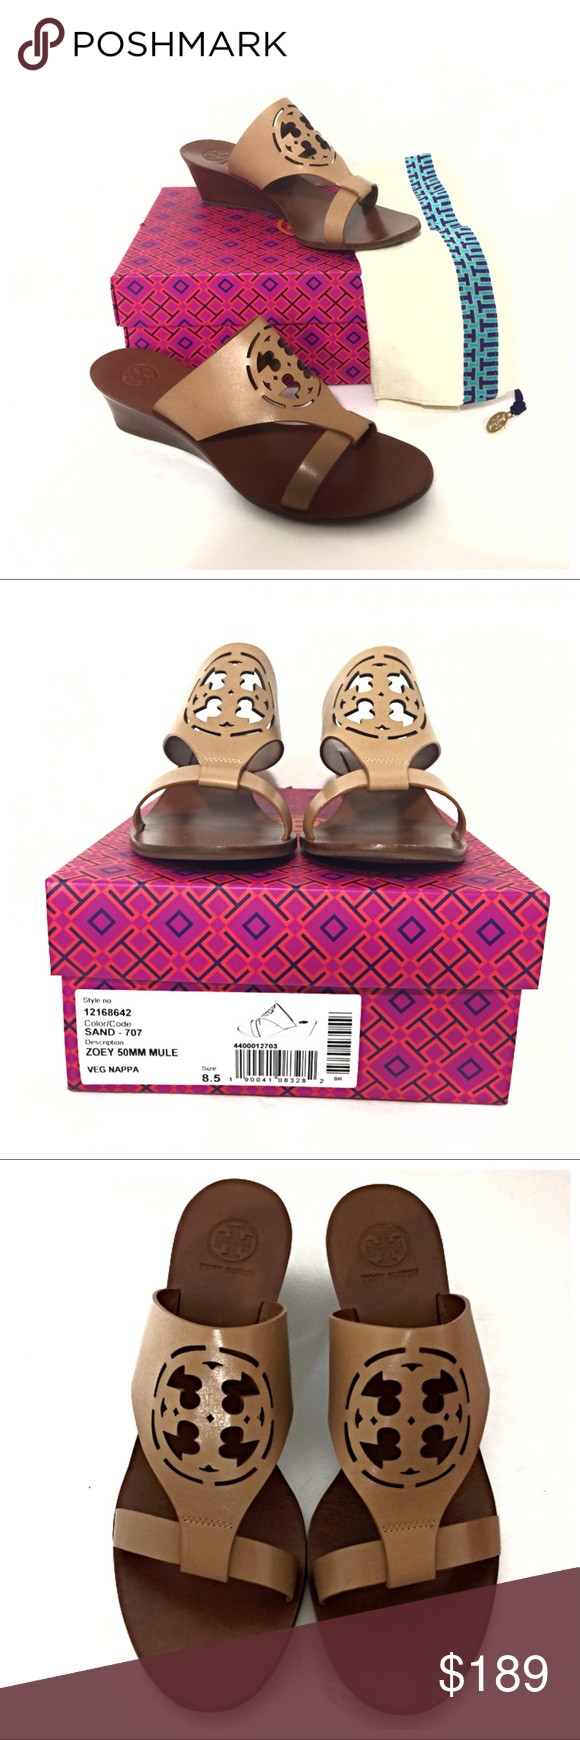 60613cec4c4af Tory Burch Zoey Slip On Wedge in Sand Authentic Tory Burch Zoey Slip On Wedge  Sandal in Sand (Tan). Includes original box and dust bag.